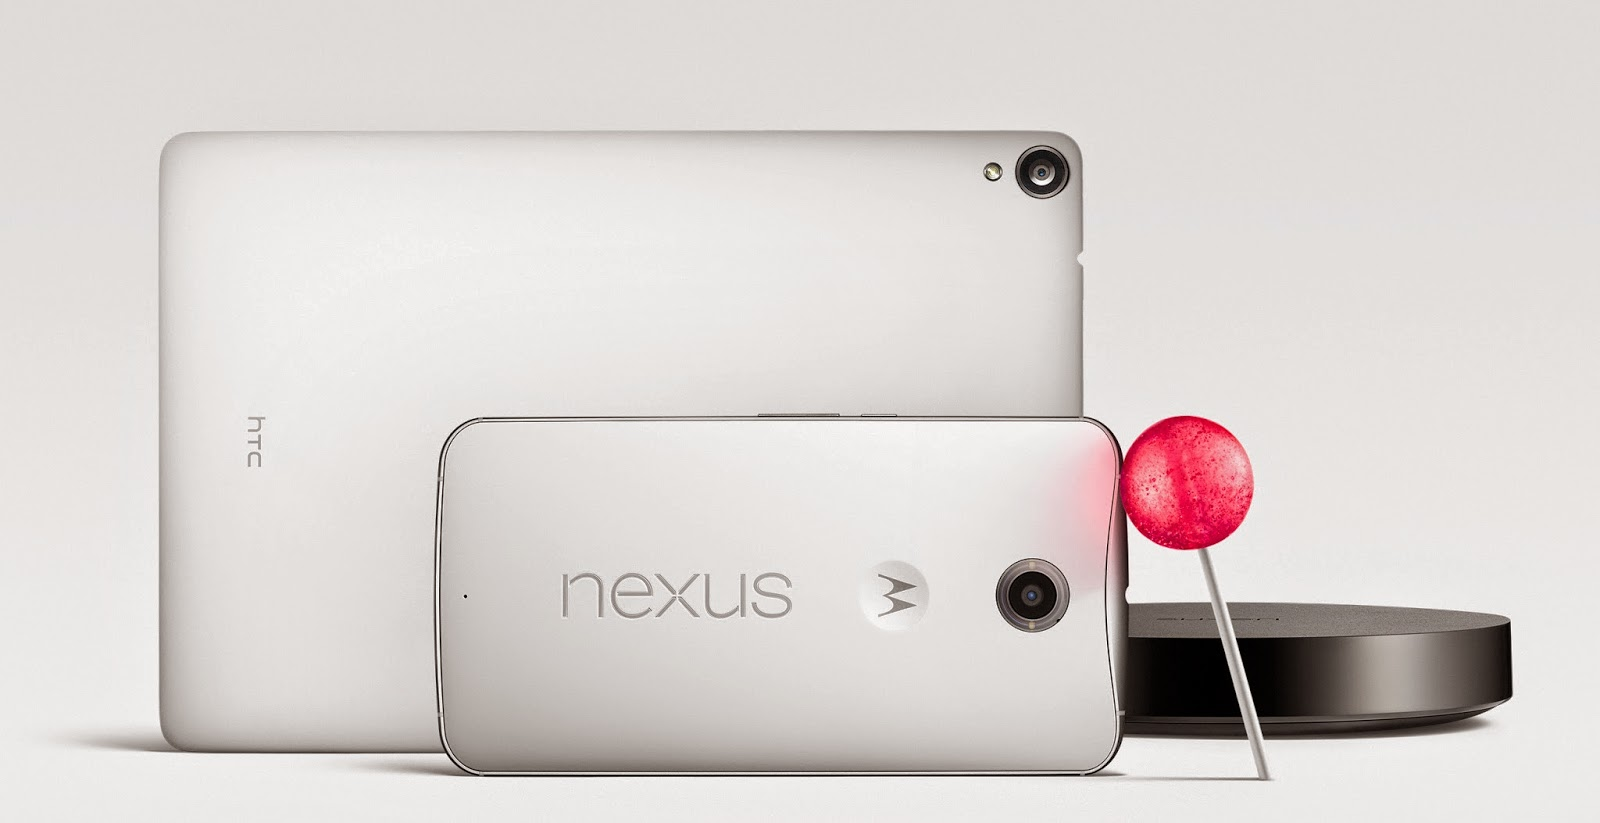 Nexus 2014 Series - Motorola Nexus 6, HTC Nexus 9, and Nexus Player